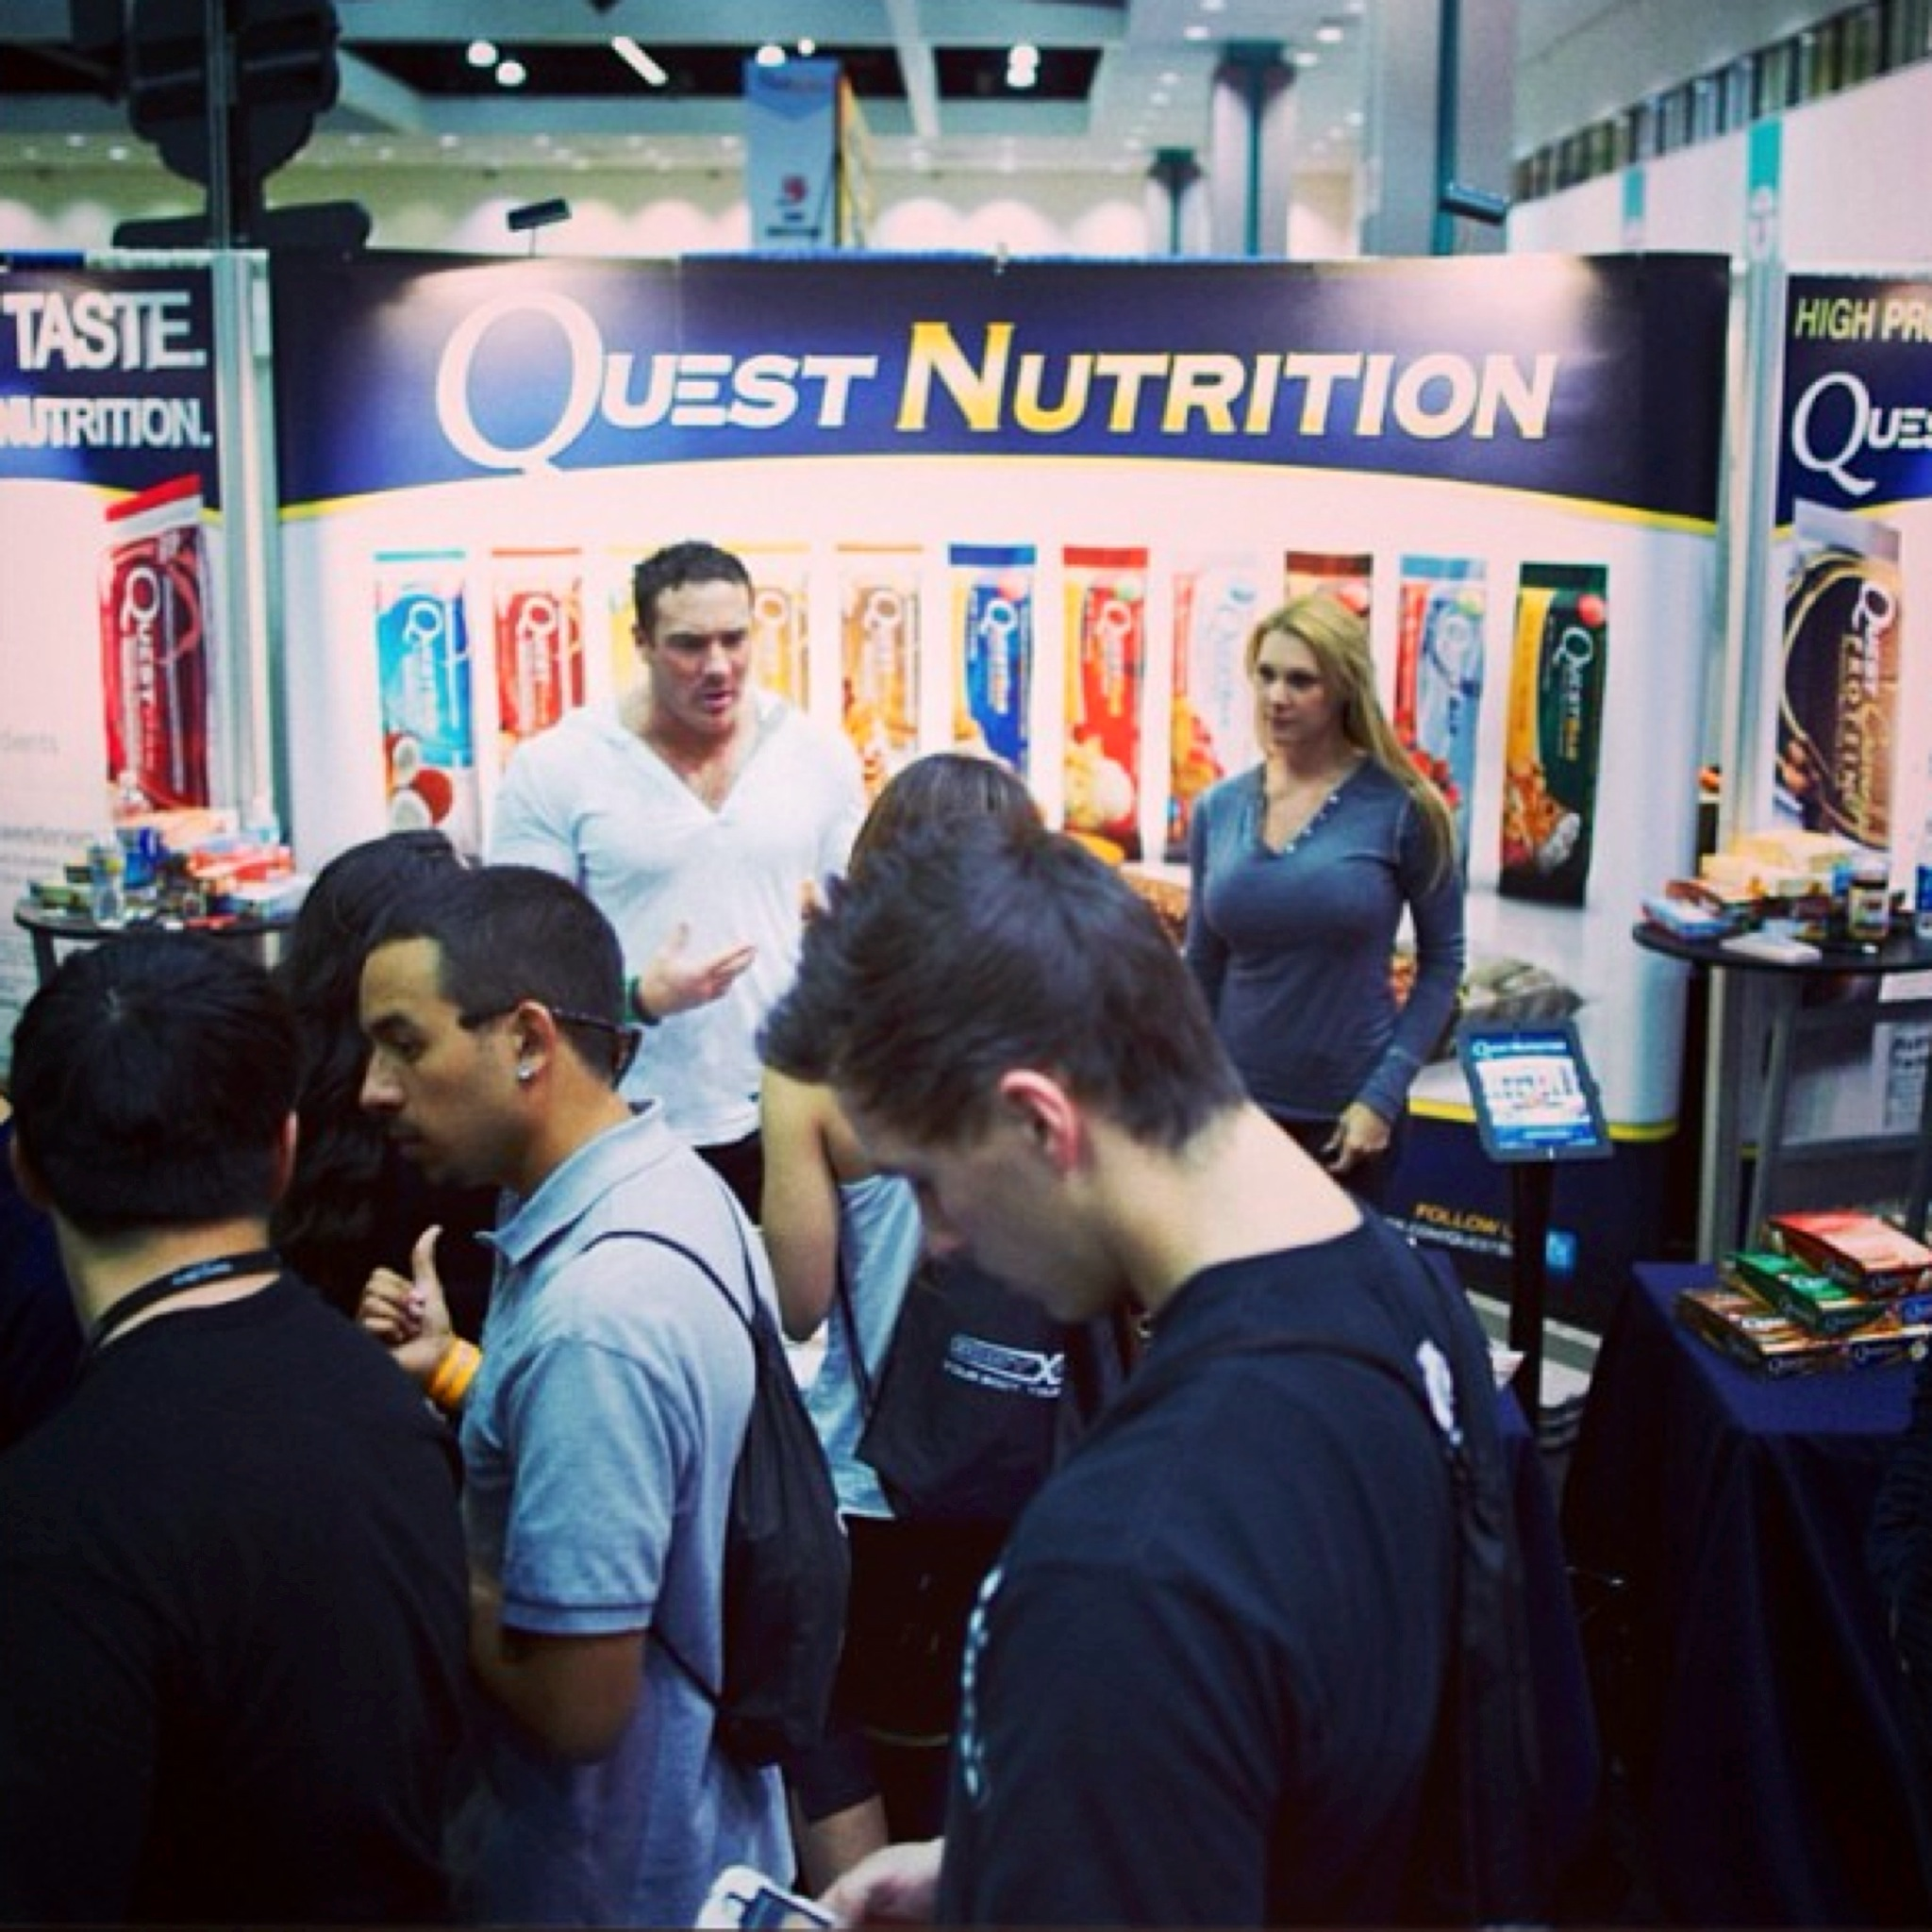 The Quest Nutrition booth at TheFitExpo in Los Angeles in January 2013.